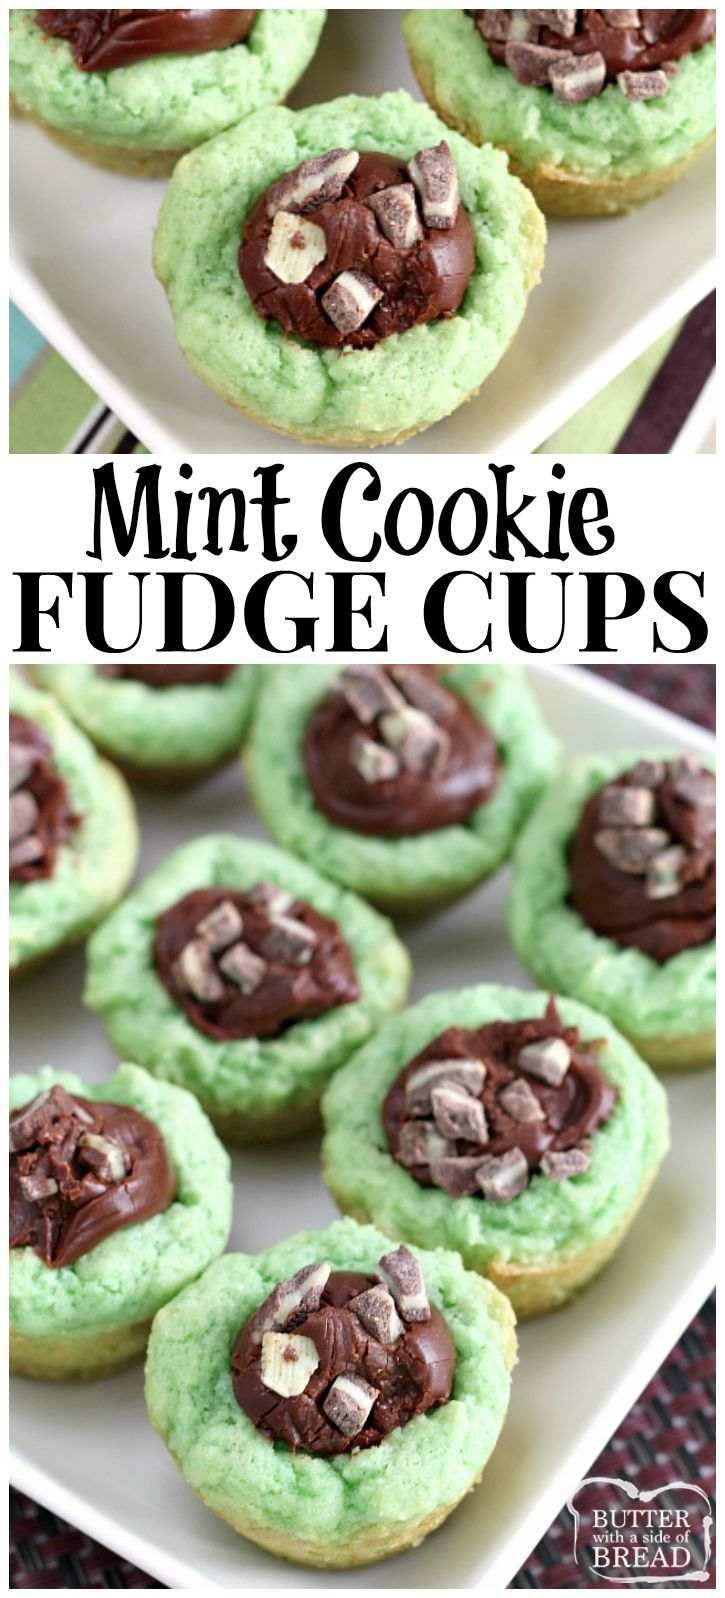 Mint Cookie Fudge Cups - simple mint cookies filled with a smooth, creamy fudge & topped with Andes mints! Dessert recipe from Butter With a Side of Bread